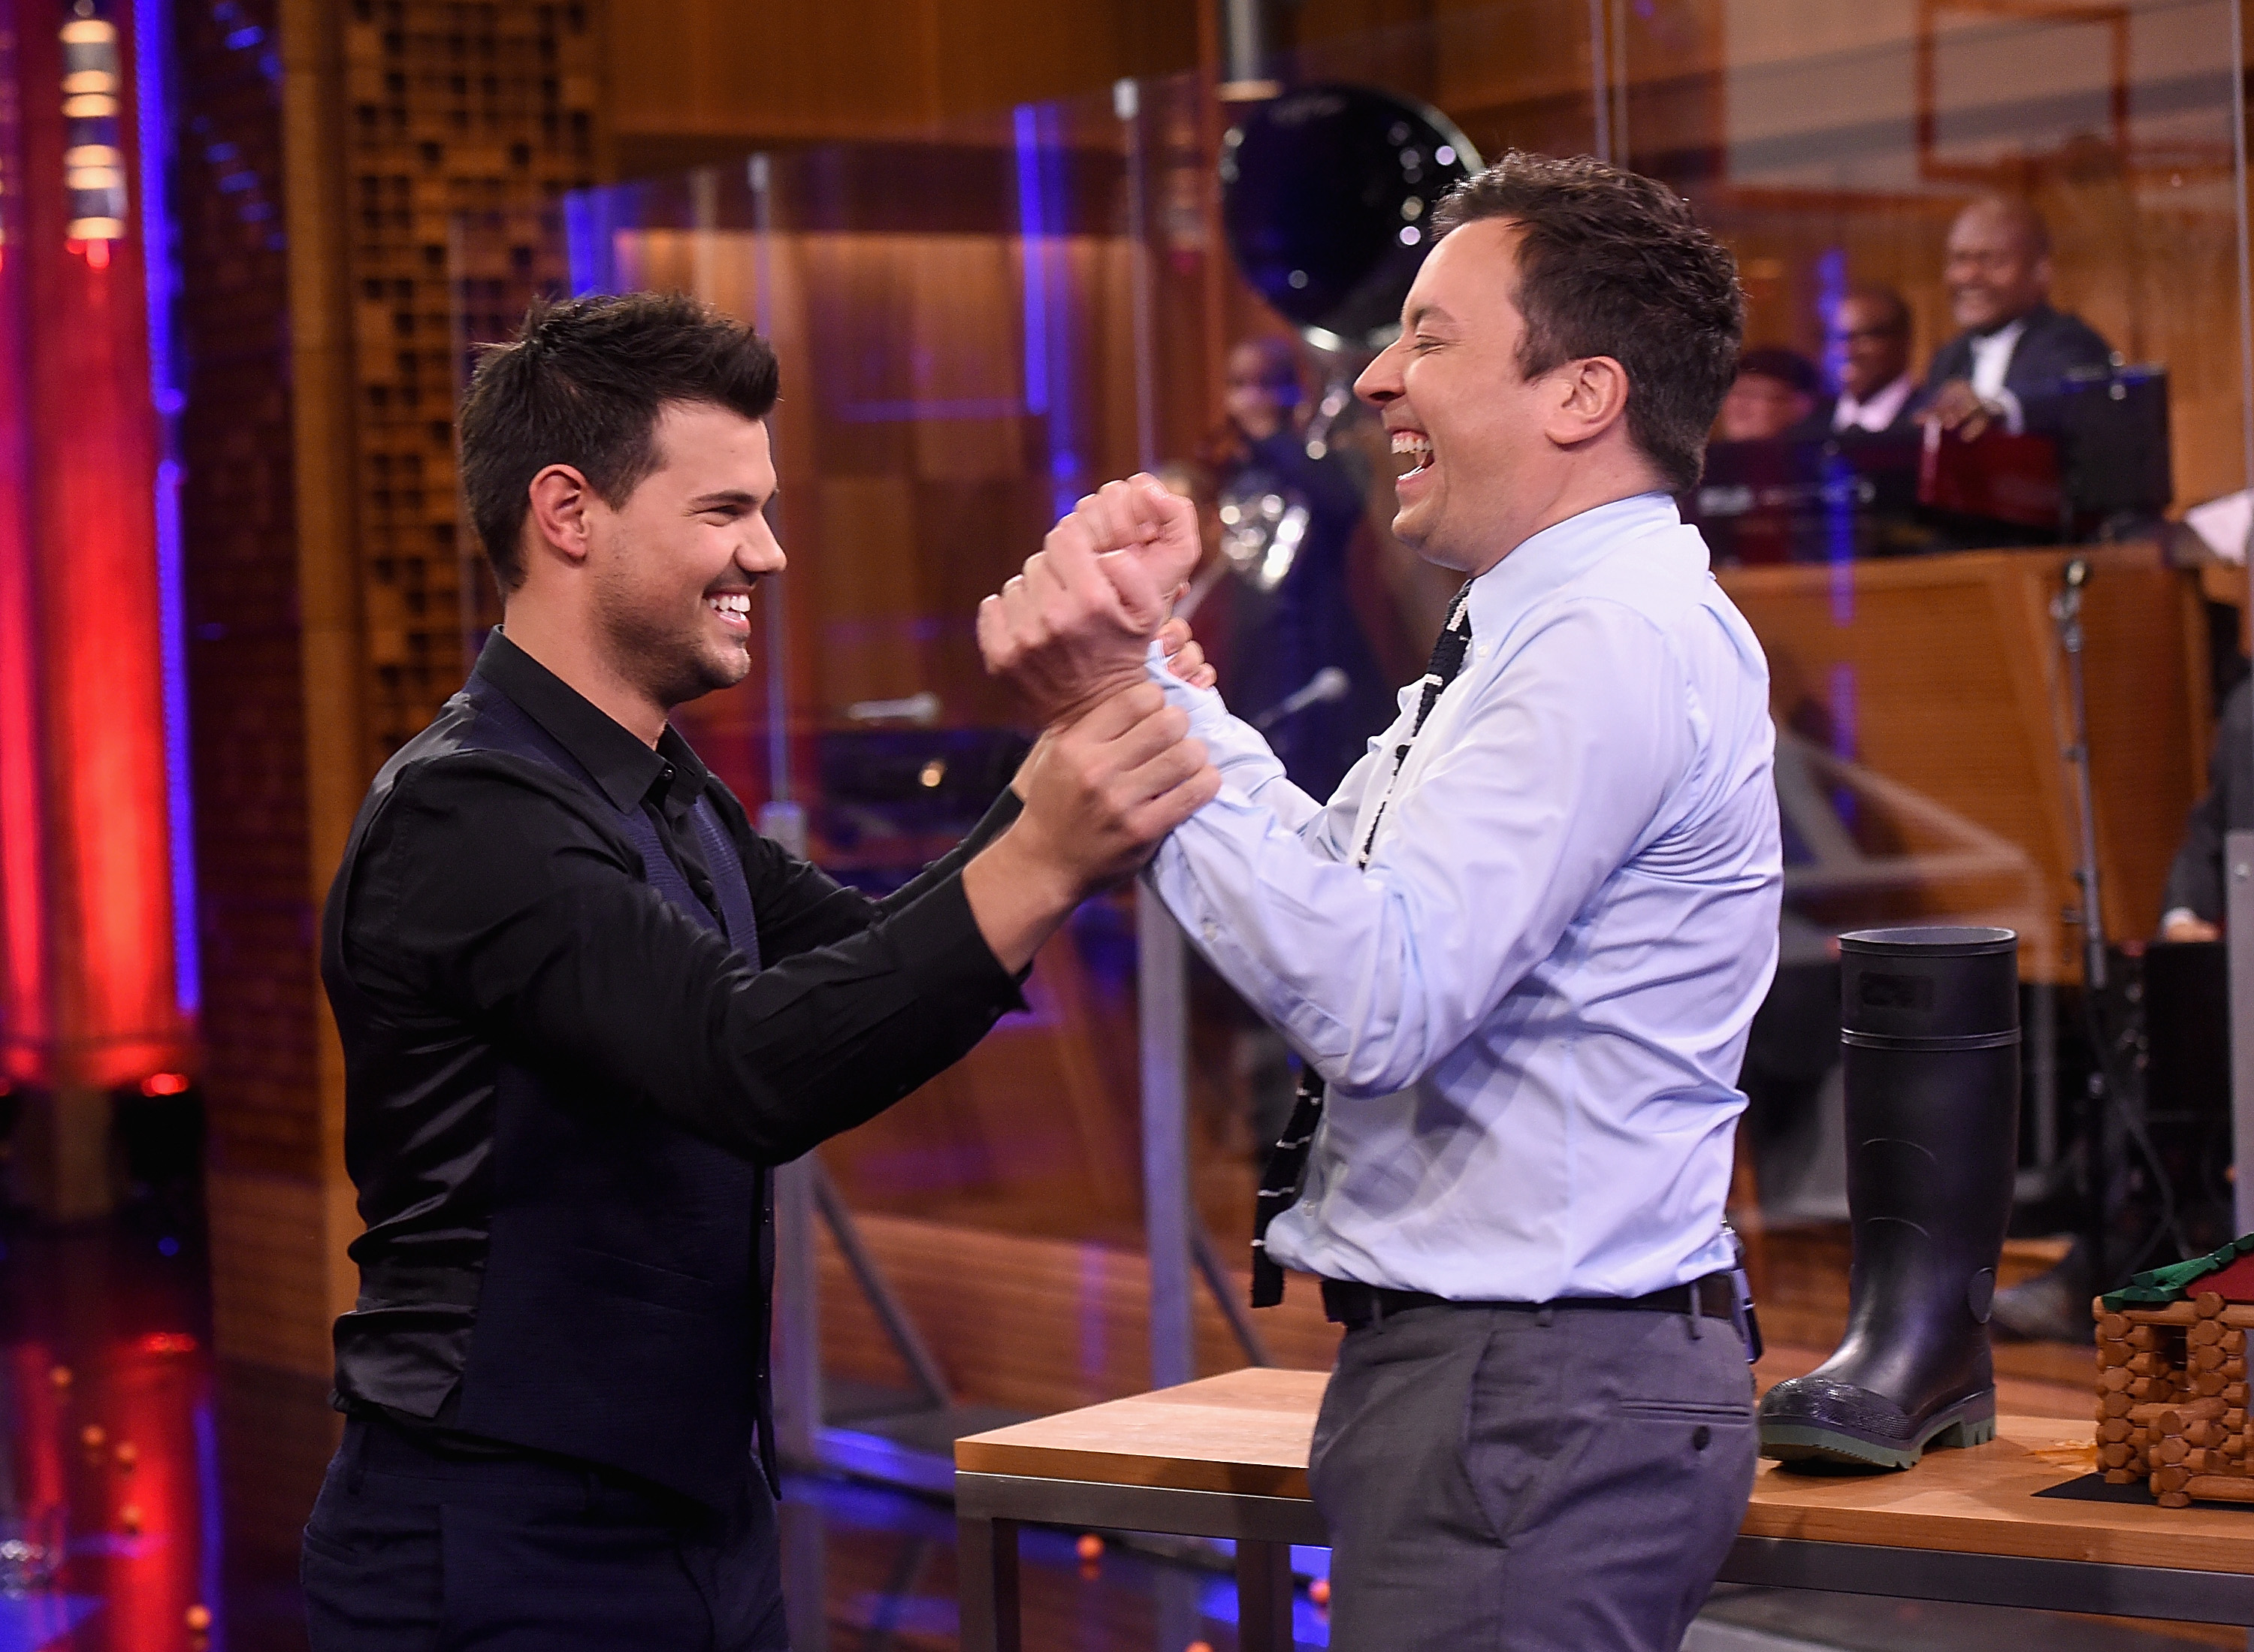 Taylor Lautner and host Jimmy Fallon during a segment on  The Tonight Show Starring Jimmy Fallon  at NBC Studios on March 31, 2016 in New York City.